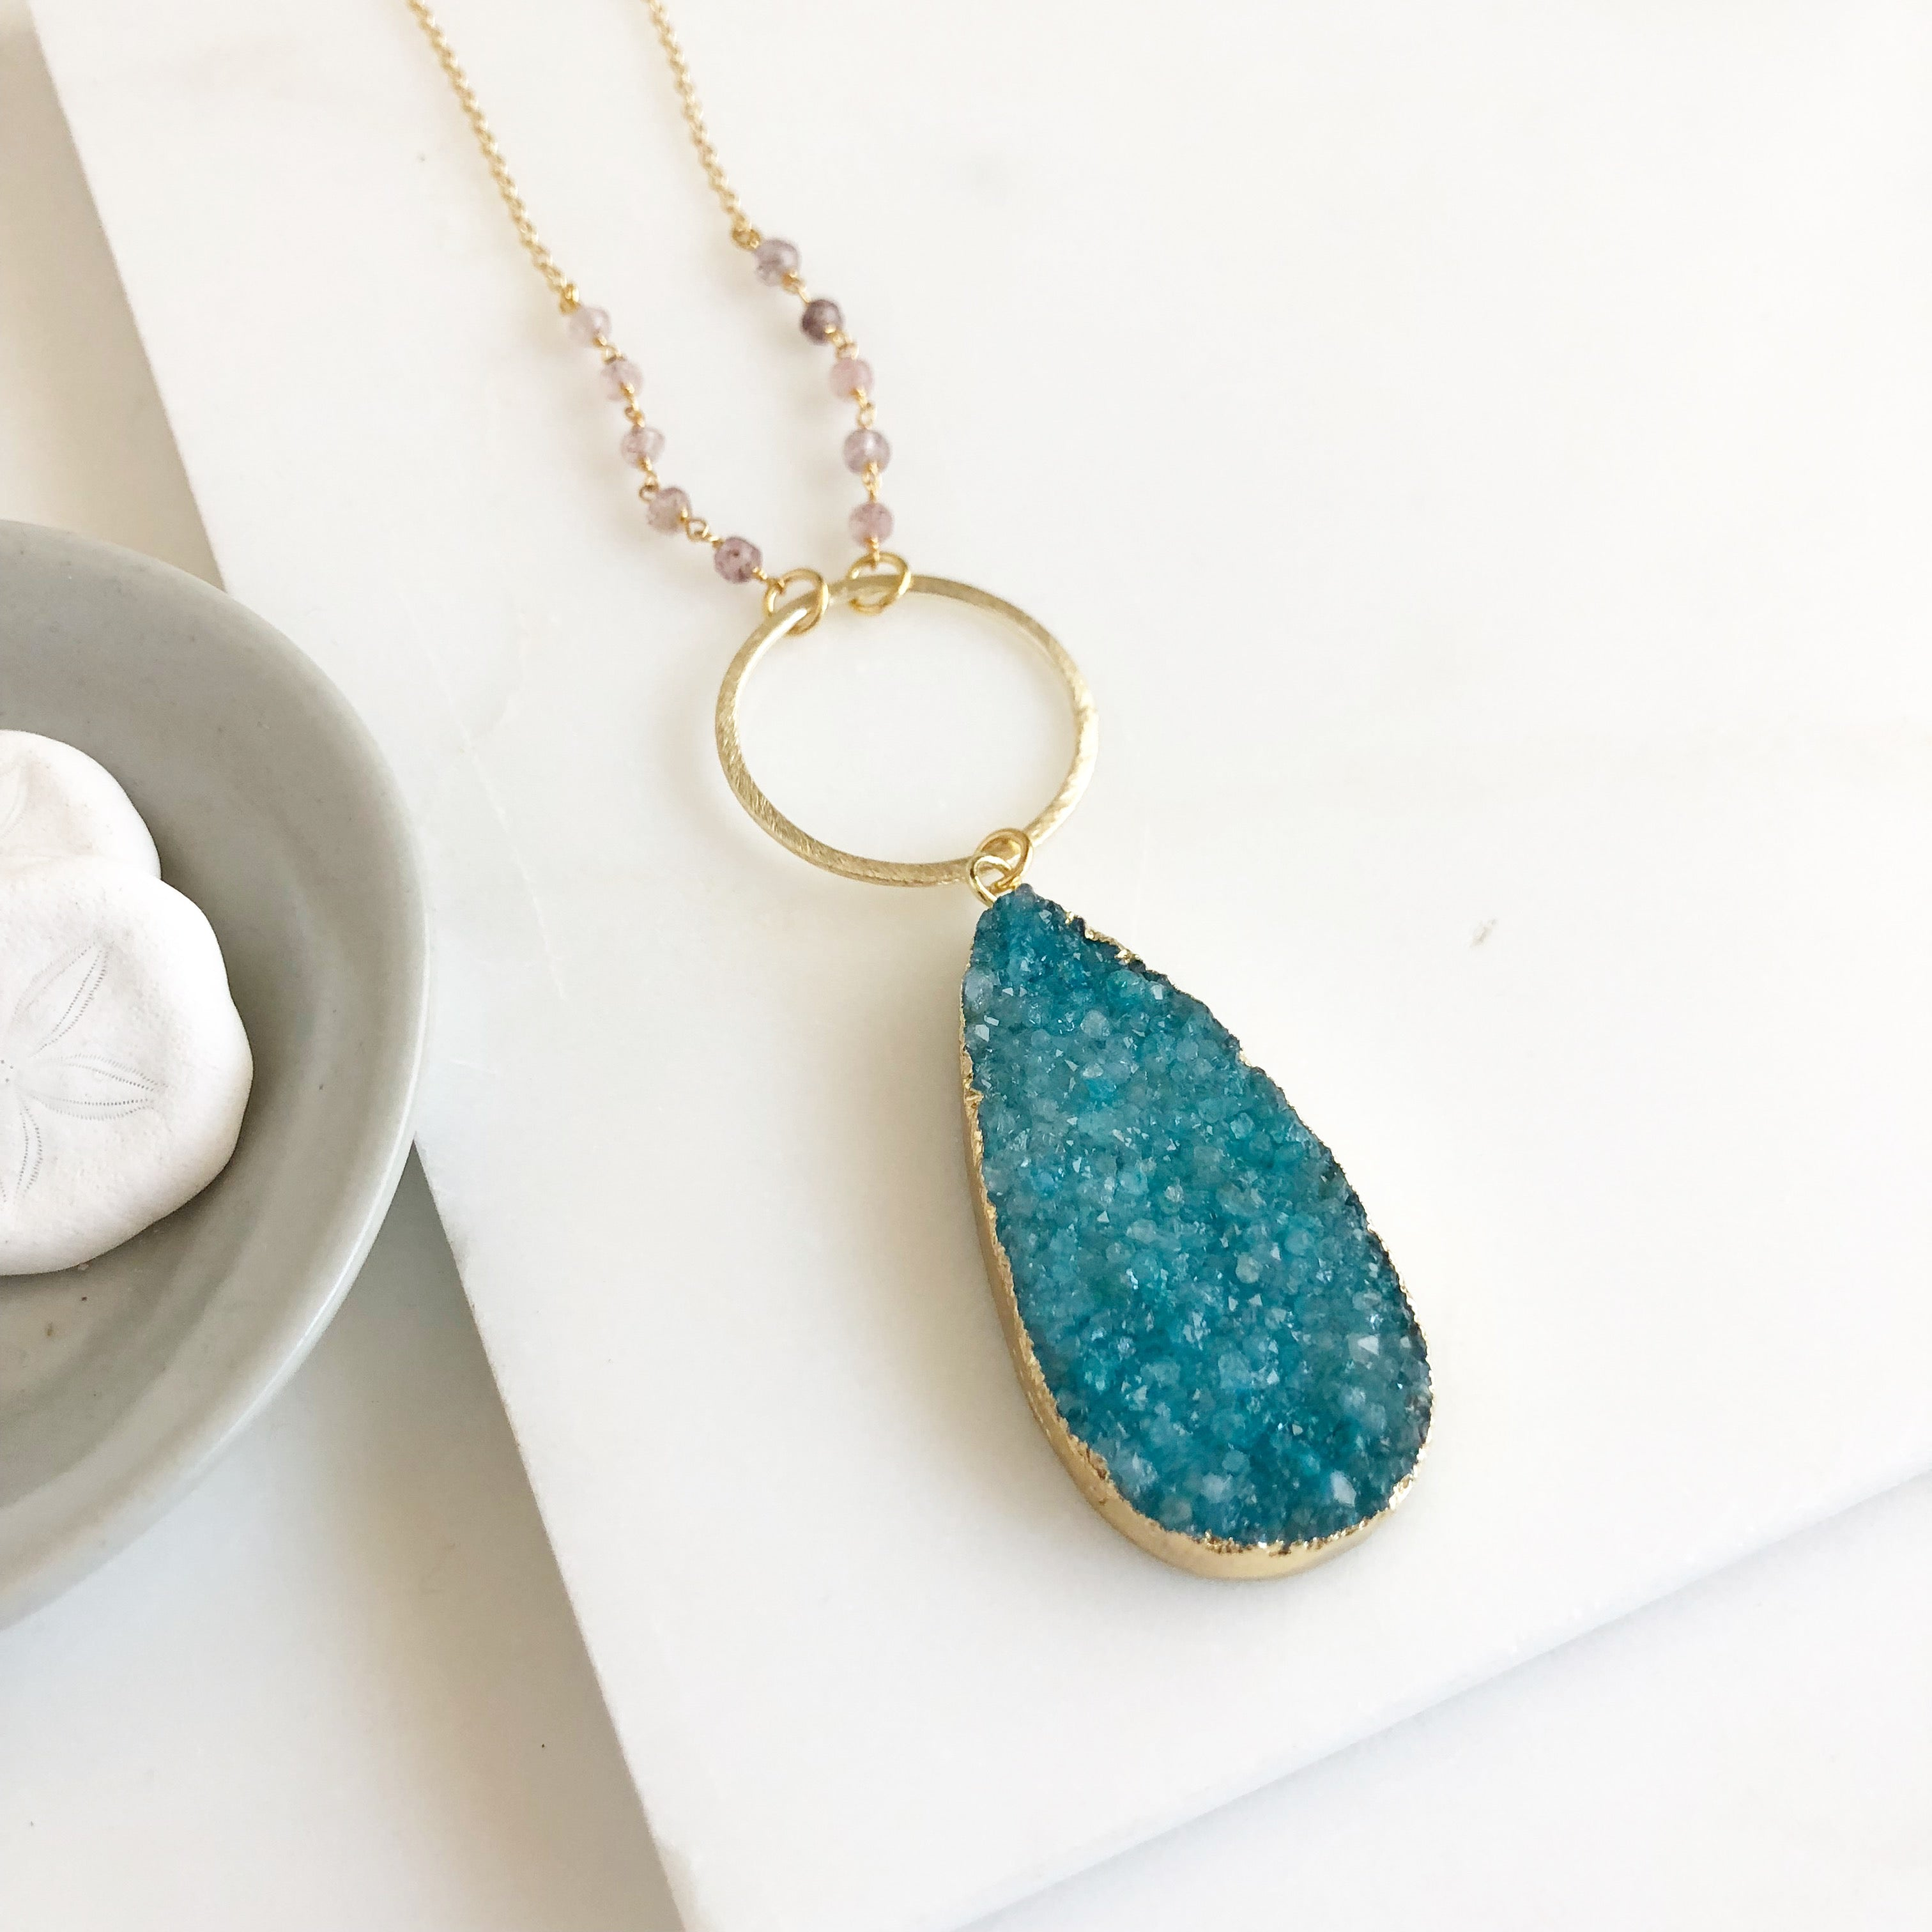 Long Teal Druzy Necklace. Teal Druzy and Strawberry Quartz Stone Necklace with Beaded Chain. Unique Jewelry Gift.